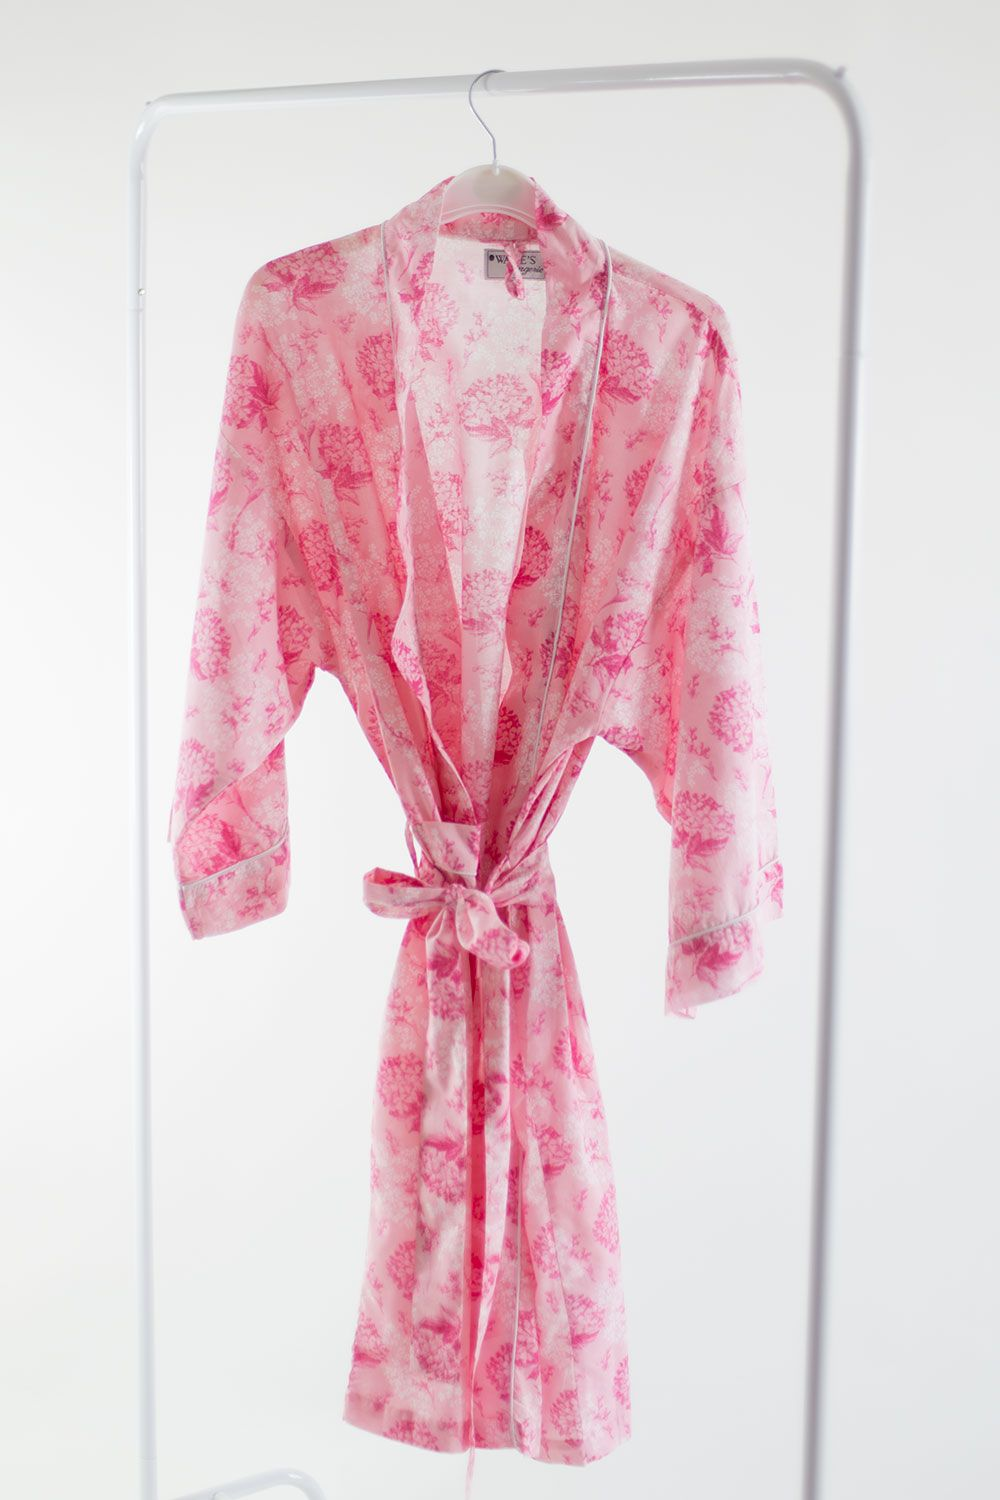 Bride Dressing Gown UK | Bride Robes and Personalised Wedding Gifts ...